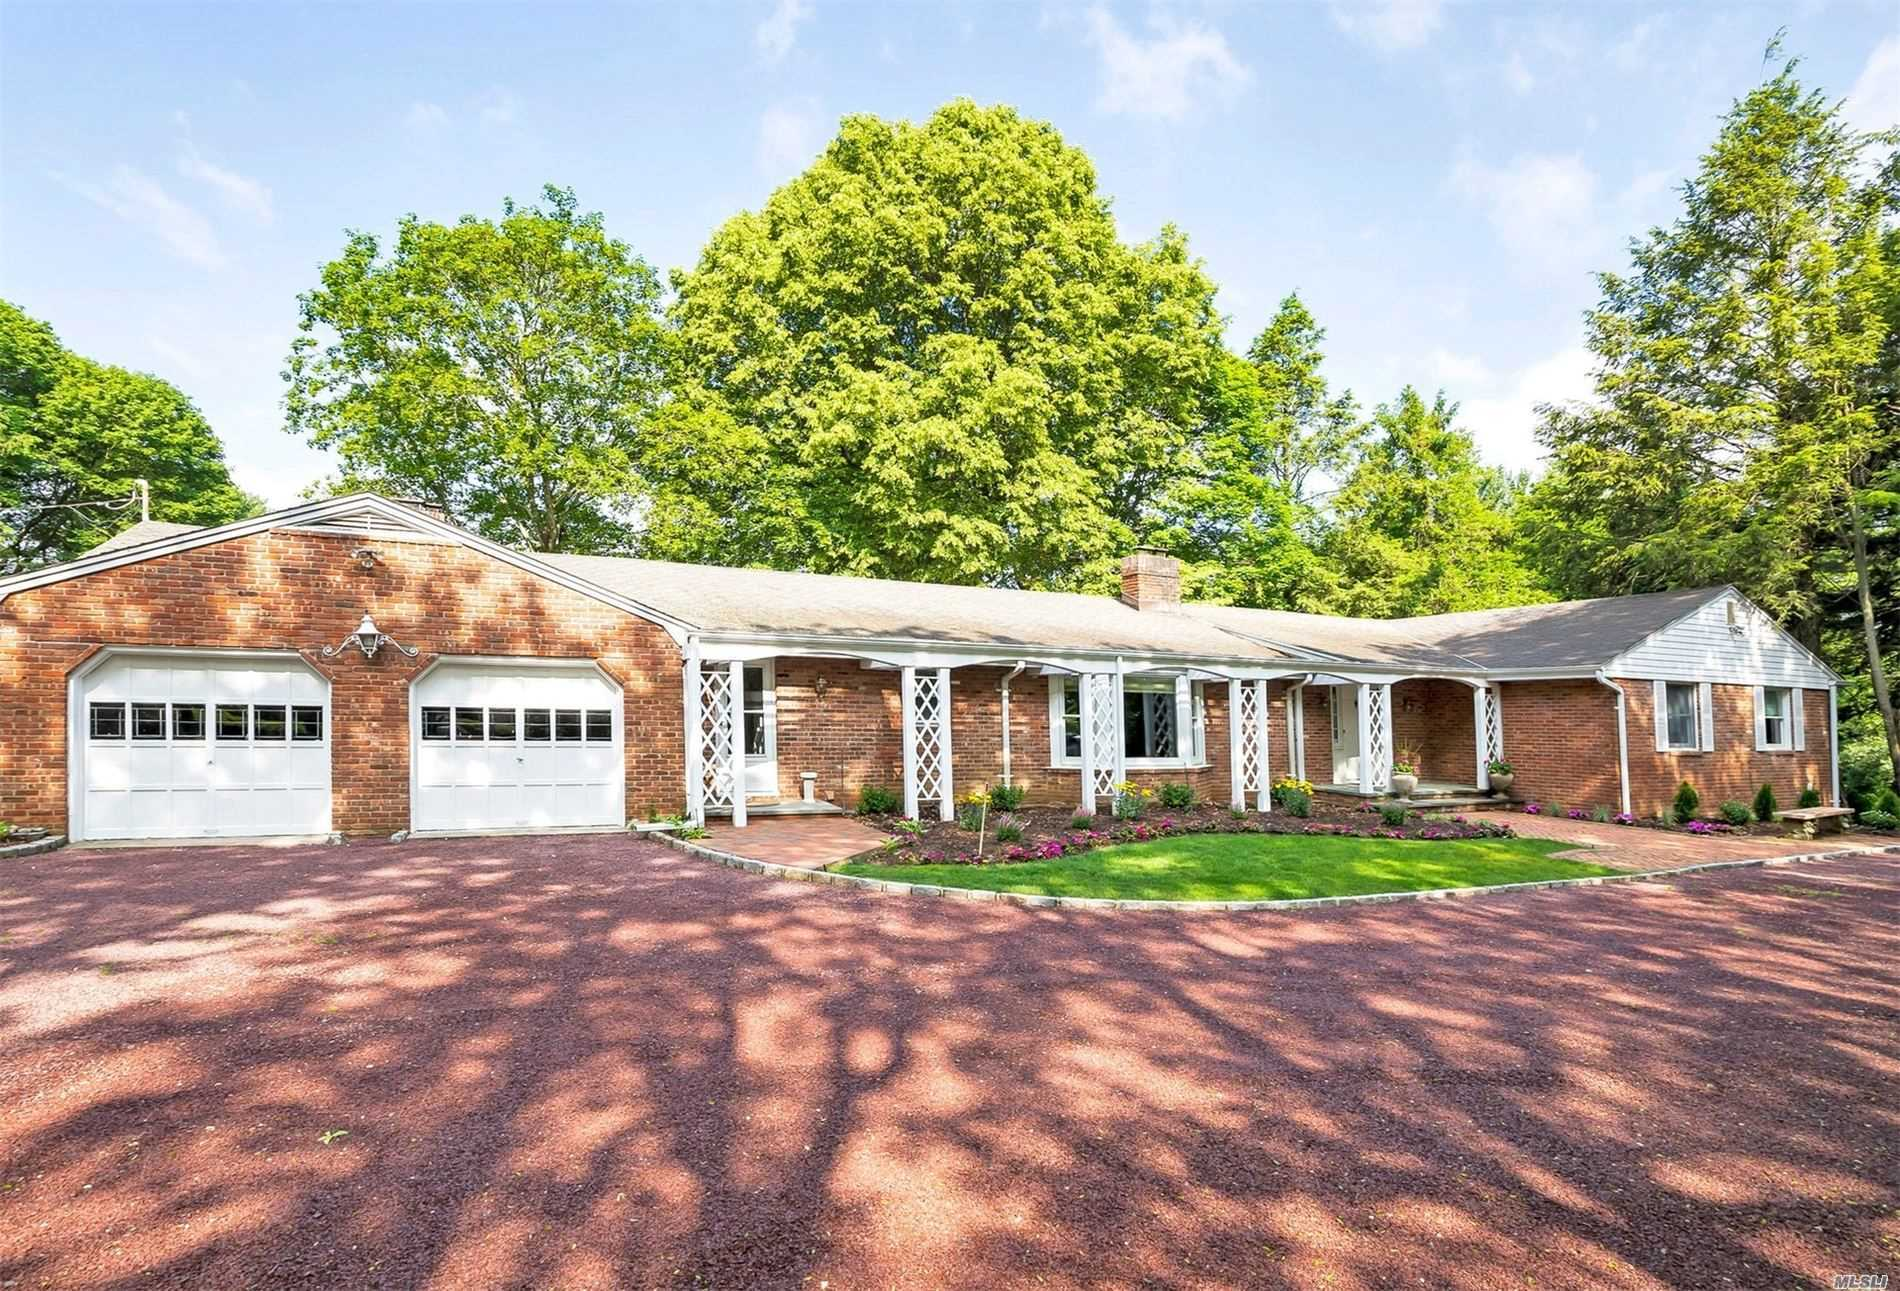 Majestic And Mature Park Like Property Just shy of 4 Acres Custom Built Mid Century Modern Sprawling Brick Ranch With Over Sized Rooms All with Views of Property Perfectly Located In The Prestigious North Shore Schools